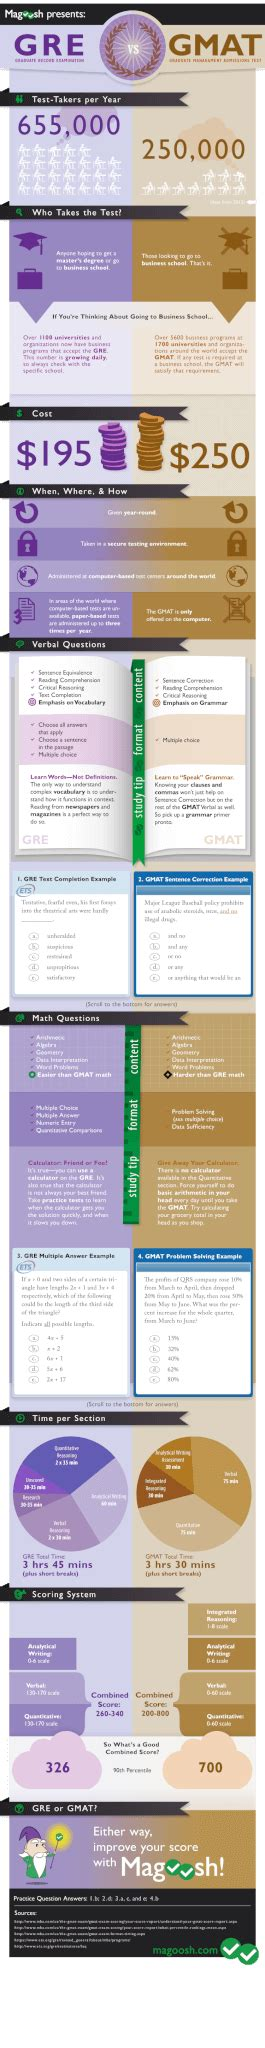 Gre Scores For Mba Programs by Gre Vs Gmat Magoosh Gre